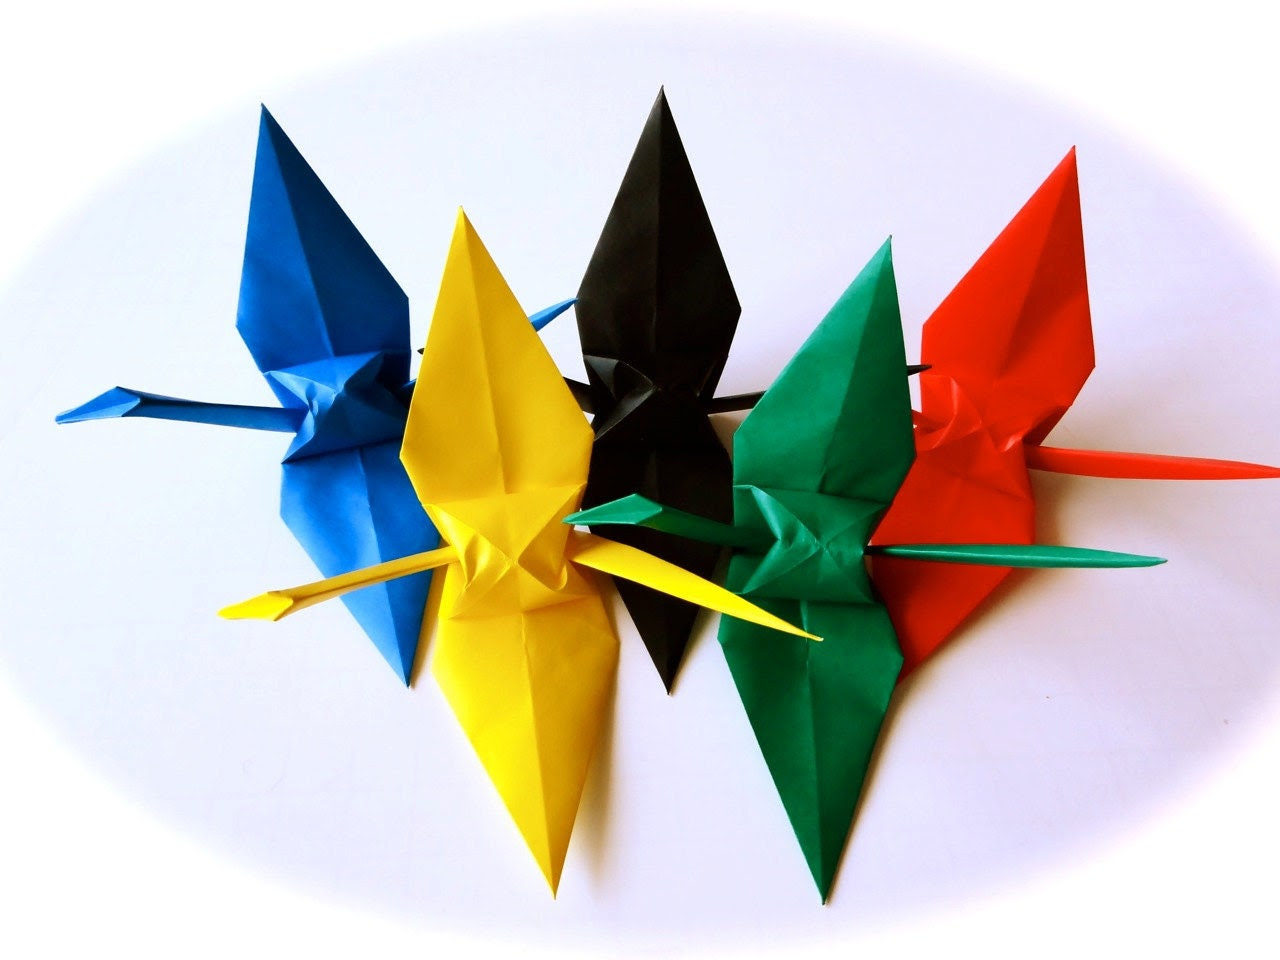 100 Olympic 5 color Origami Cranes  (6 inches size)